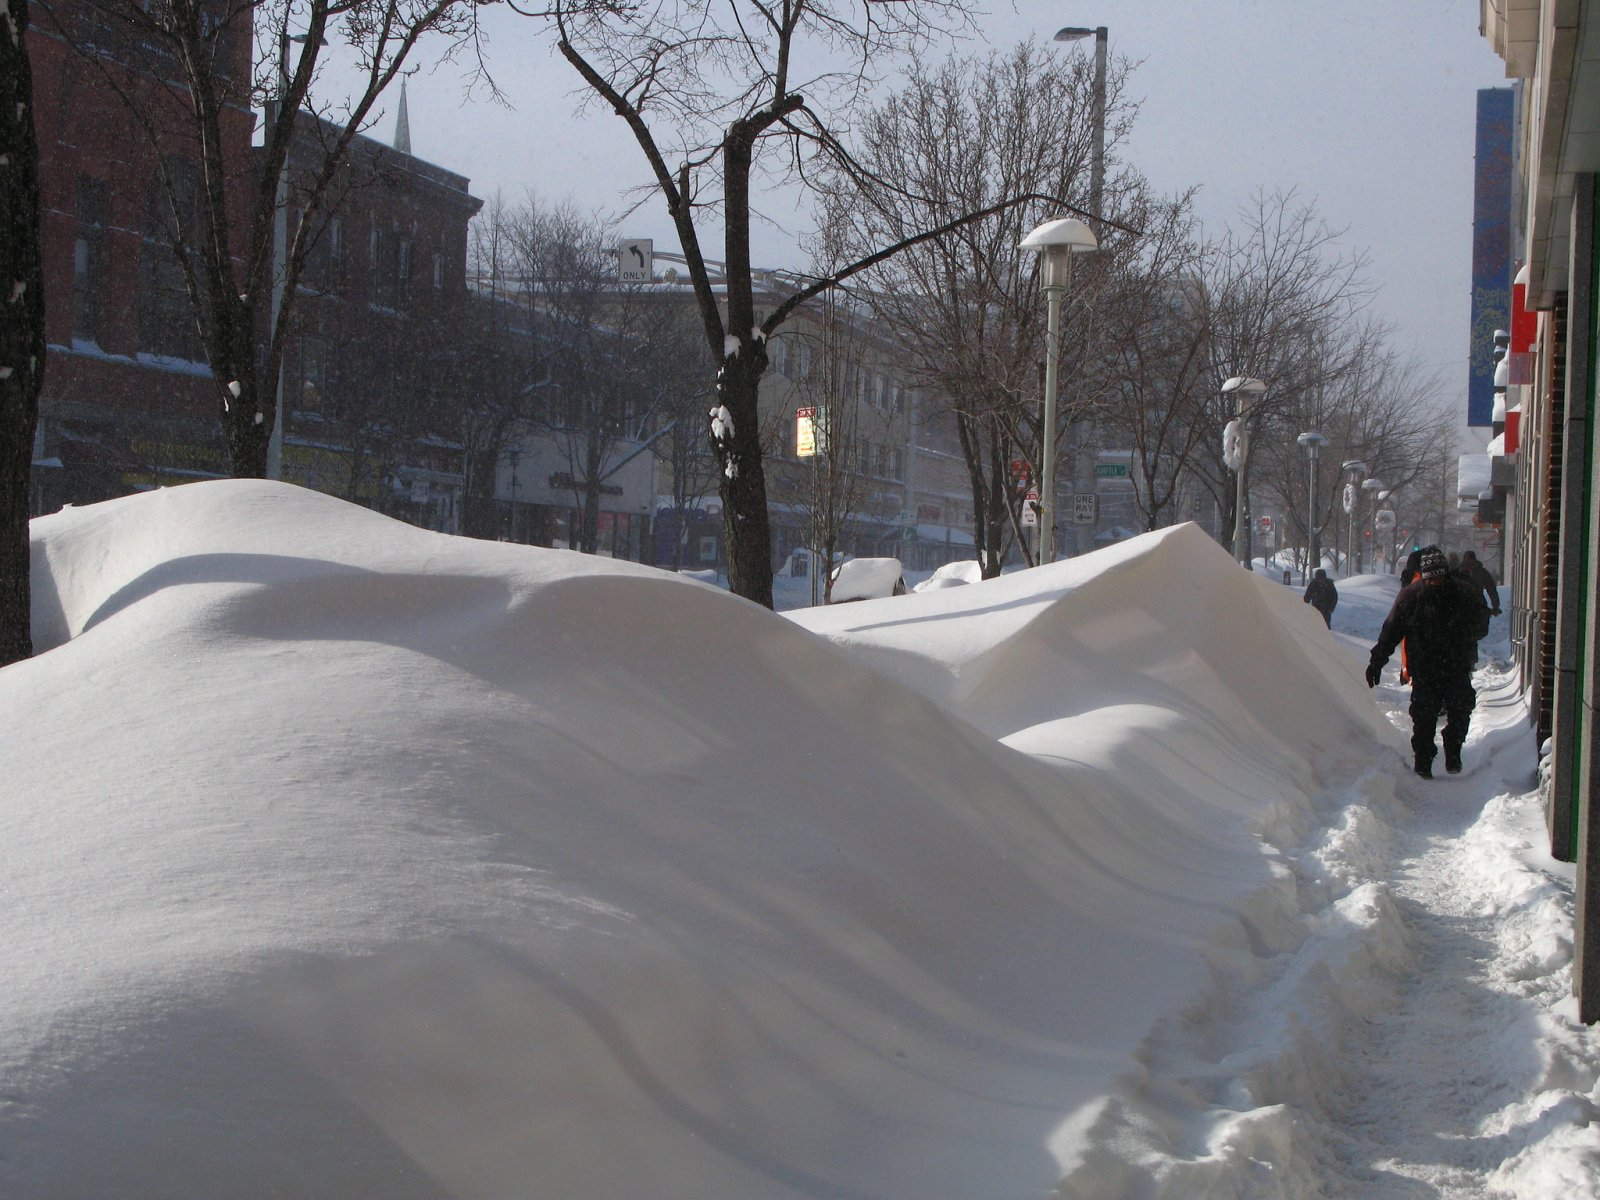 Boston's record-breaking winter stemmed in part from a warming Arctic